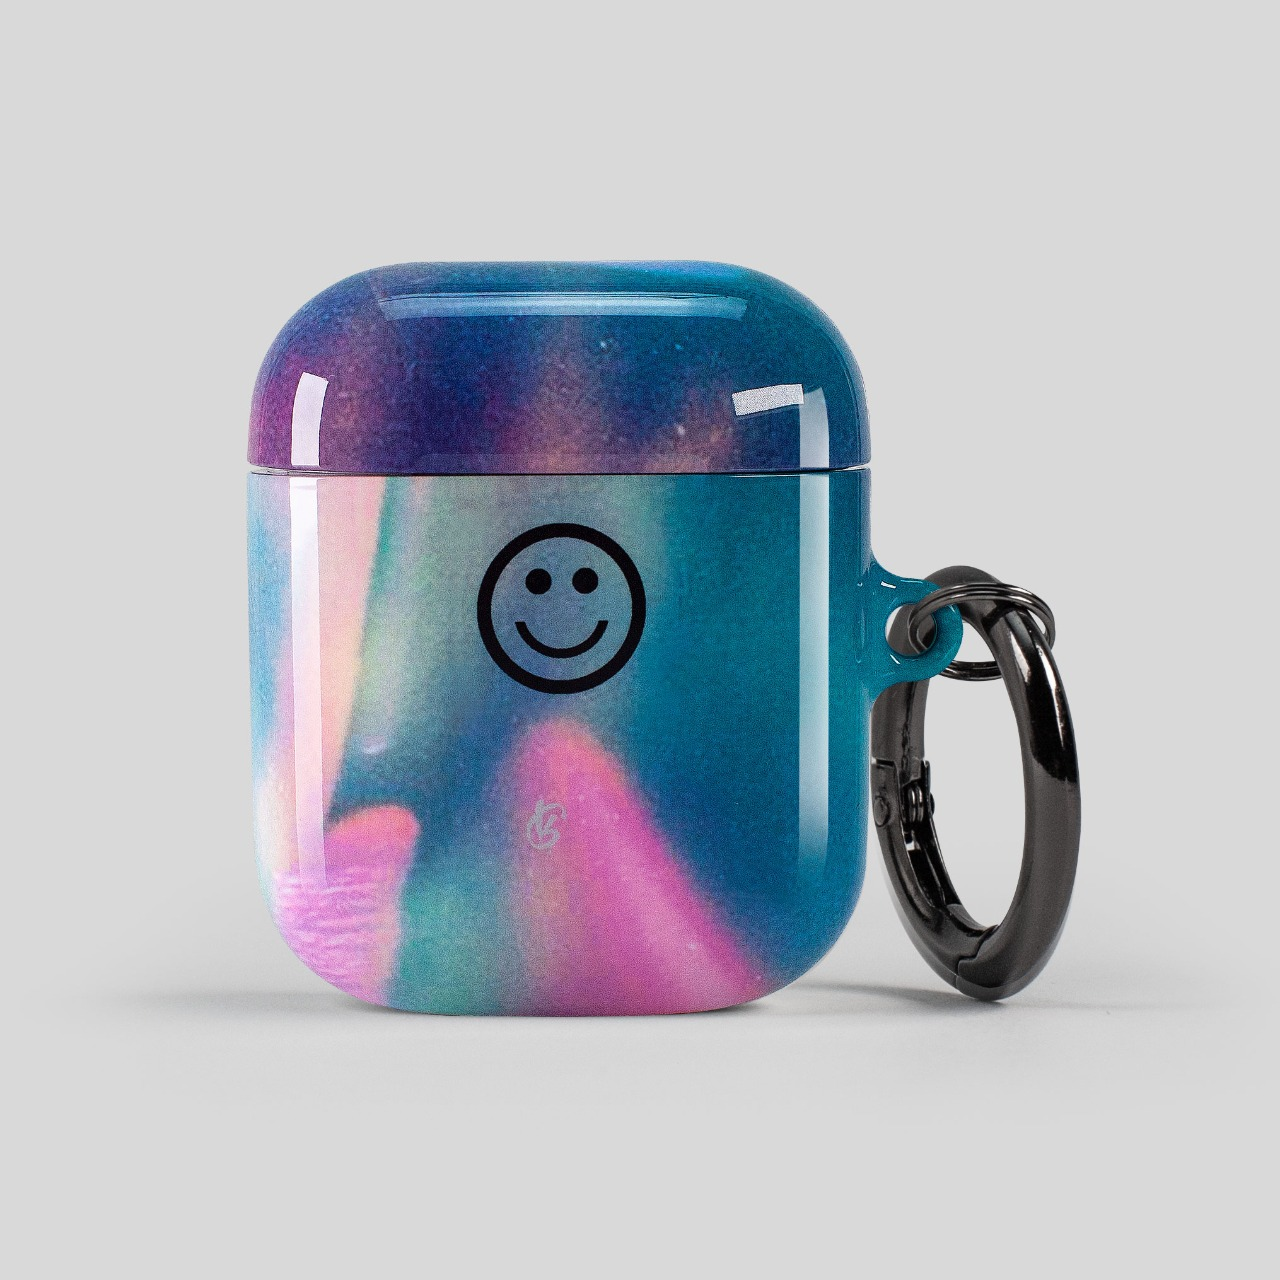 [Airpods cases] Molly No.01